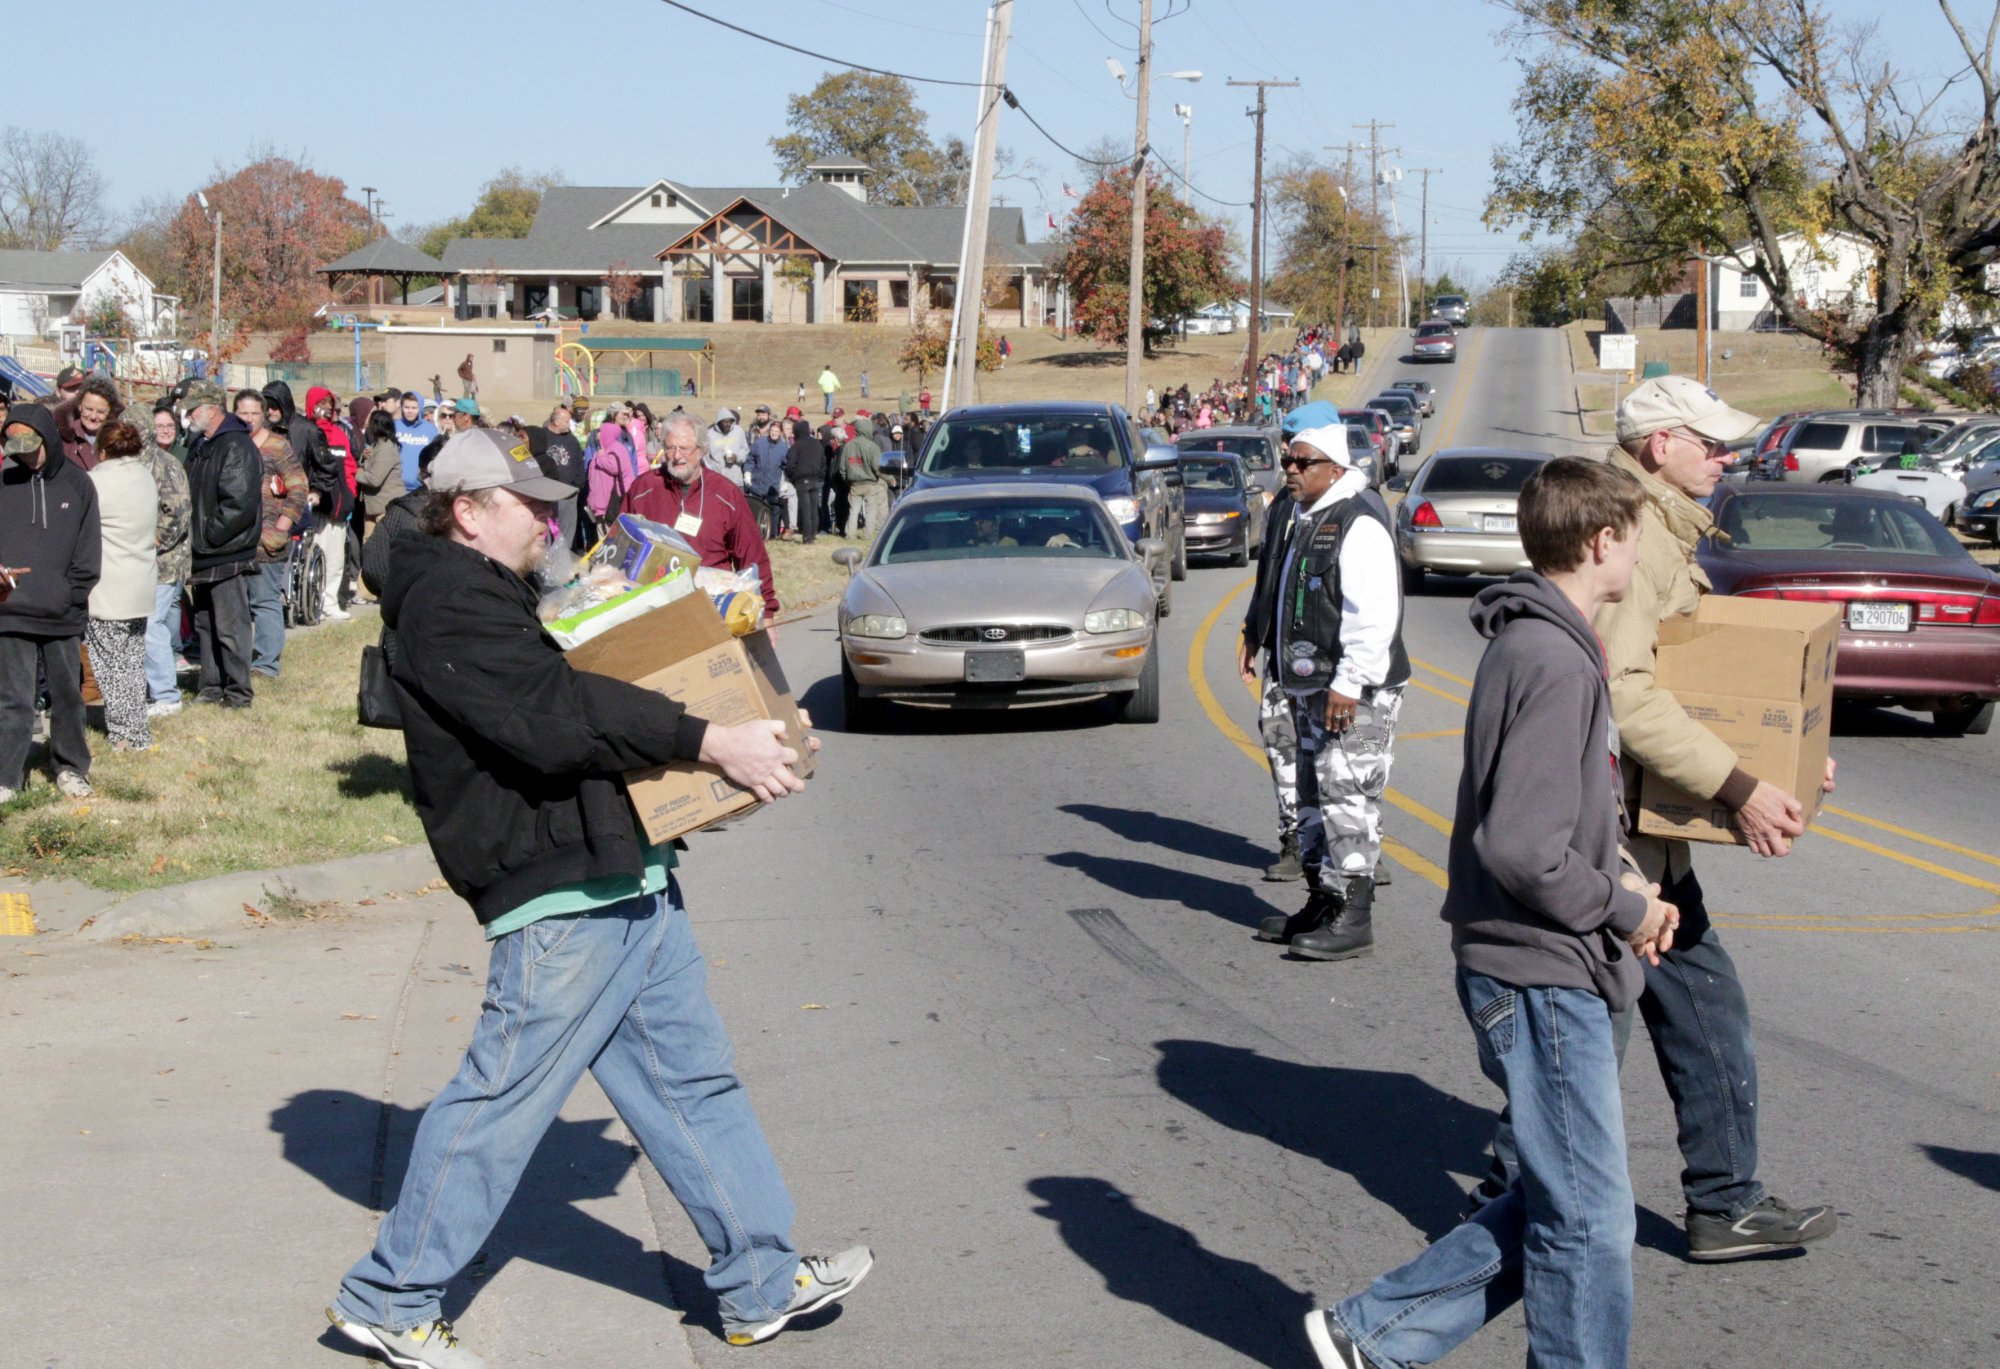 Members of the Ruff Ryders Motorcycle Club hold traffic to let pedestrians with food boxes cross Greenwood Ave.,  Saturday, Nov 19, 2016, at the quarterly Antioch in the Park food giveaway in Martin Luther King Jr. Park. JAMIE MITCHELL/TIMES RECORD